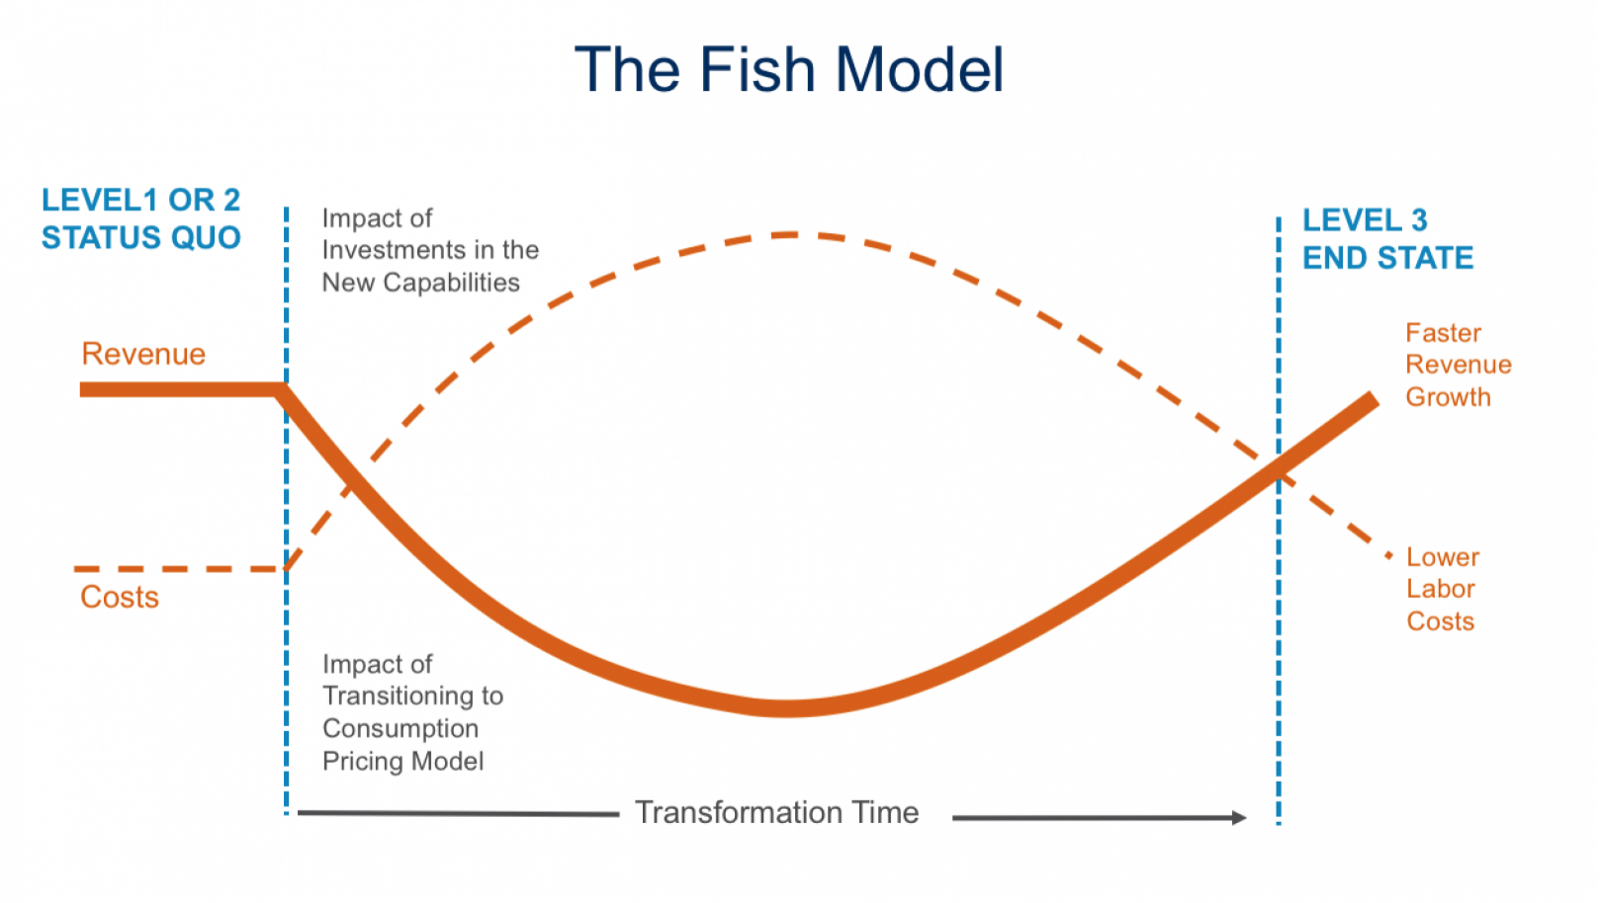 https://inplayer.com/wp-content/uploads/2018/09/the-fish-model.png